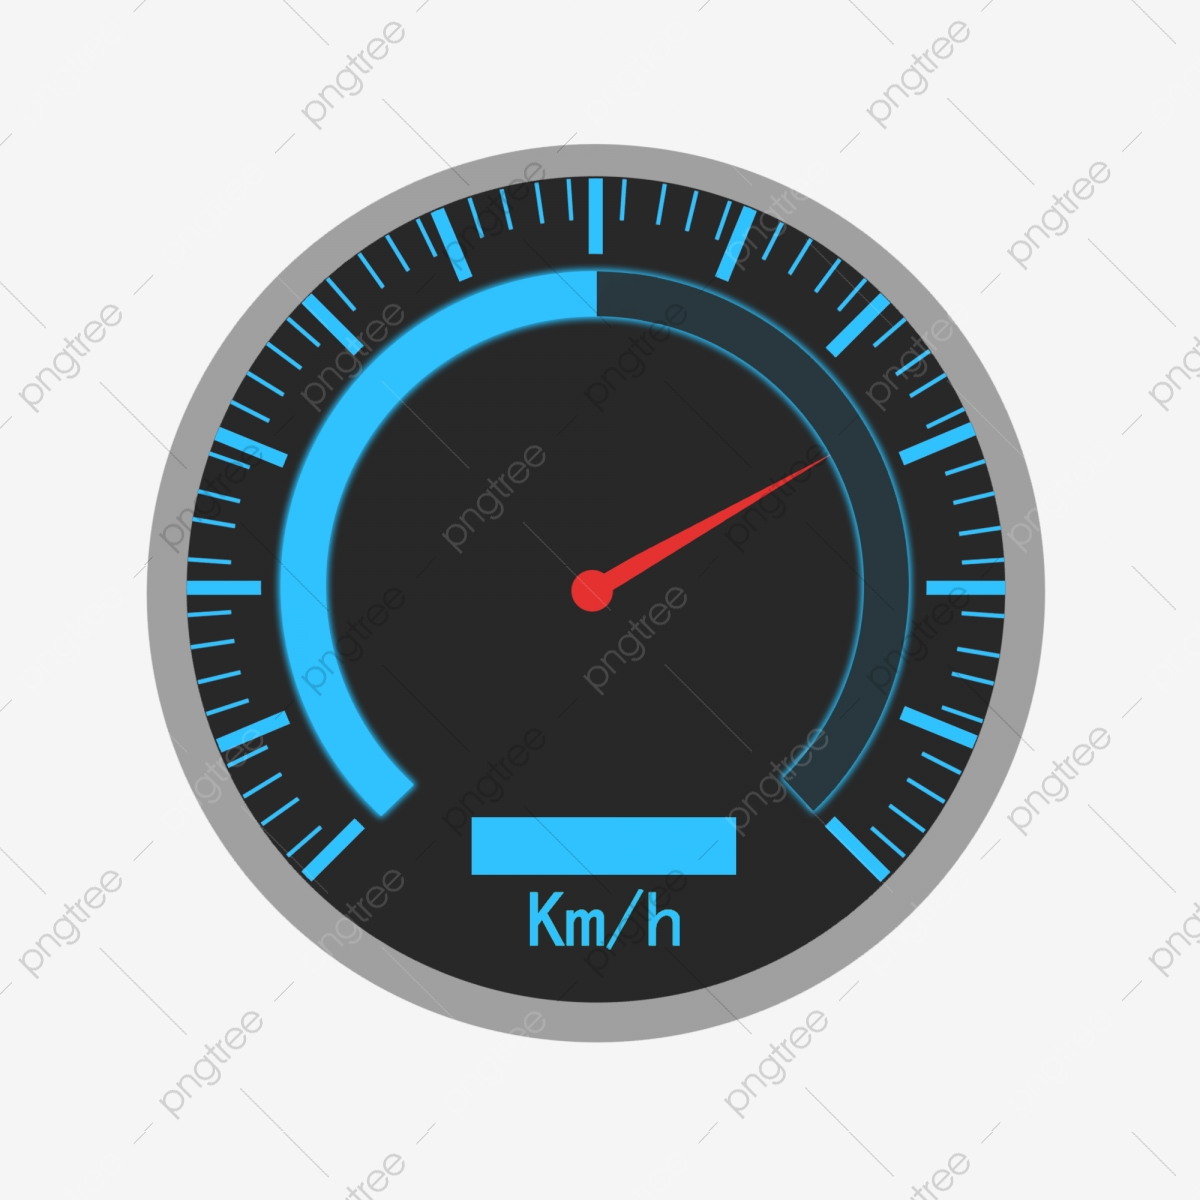 Simple car speed dashboard. Clipart cars meter